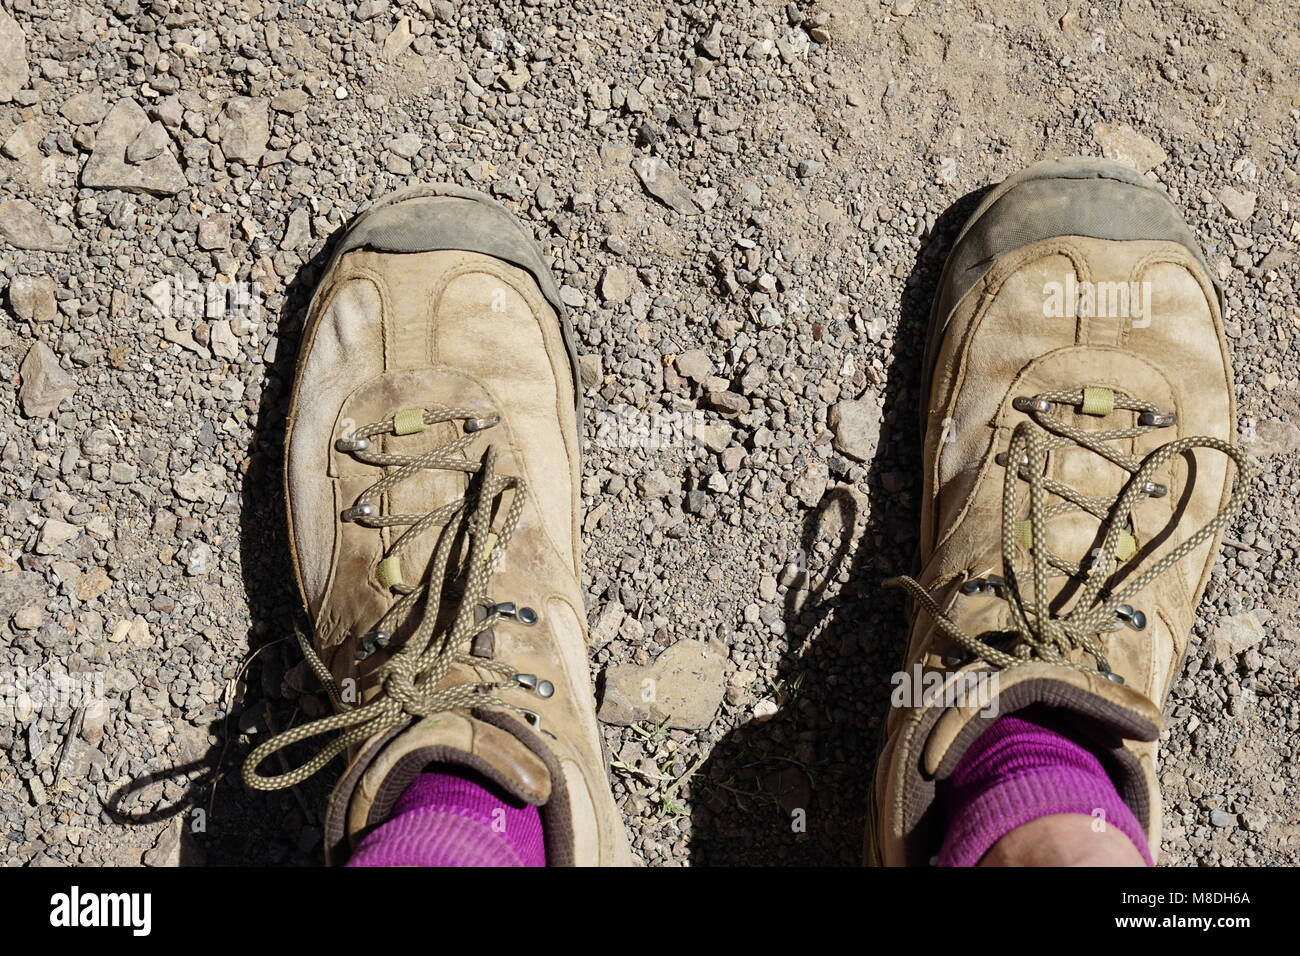 Old shoes, Santo Antao Island, Cap Verde - Stock Image